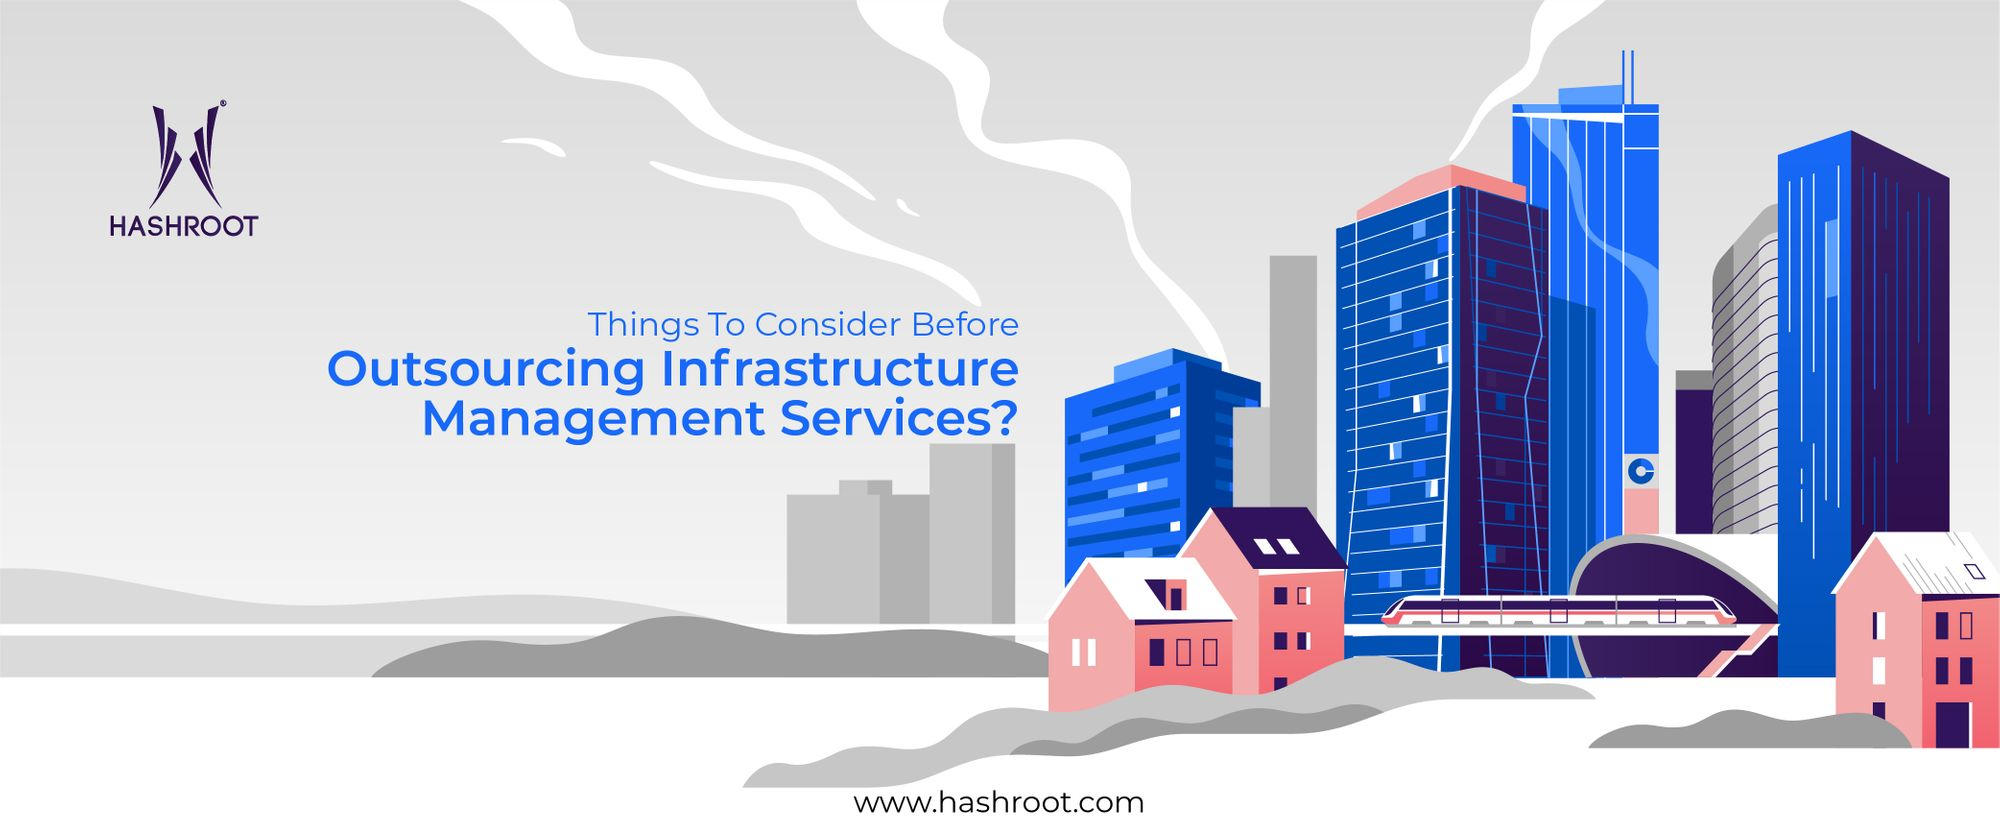 Things To Consider Before You Outsource Infrastructure Management Services?